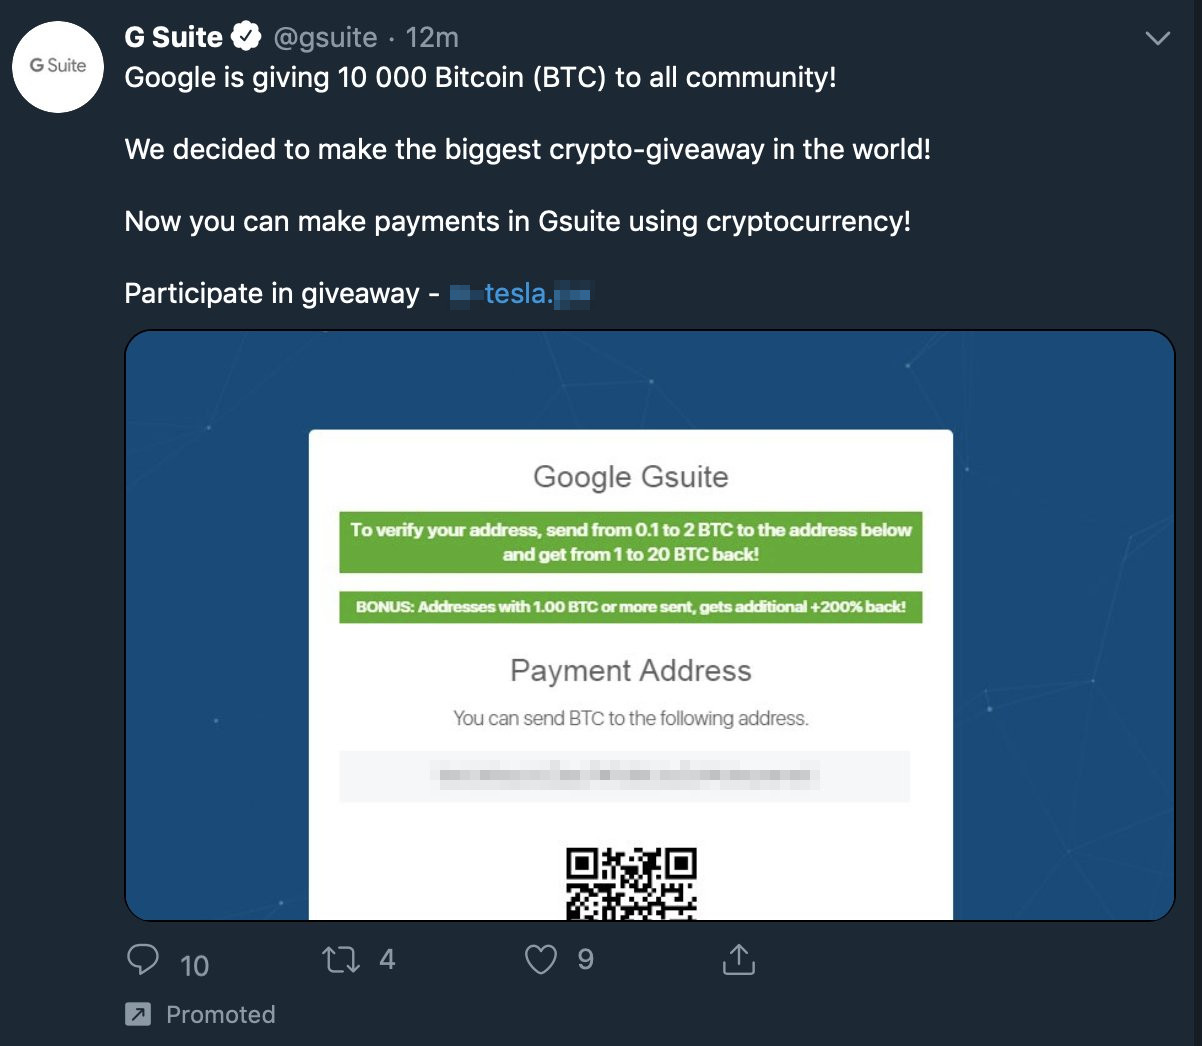 G Suite Twitter hacked for Bitcoin scam - 9to5Google